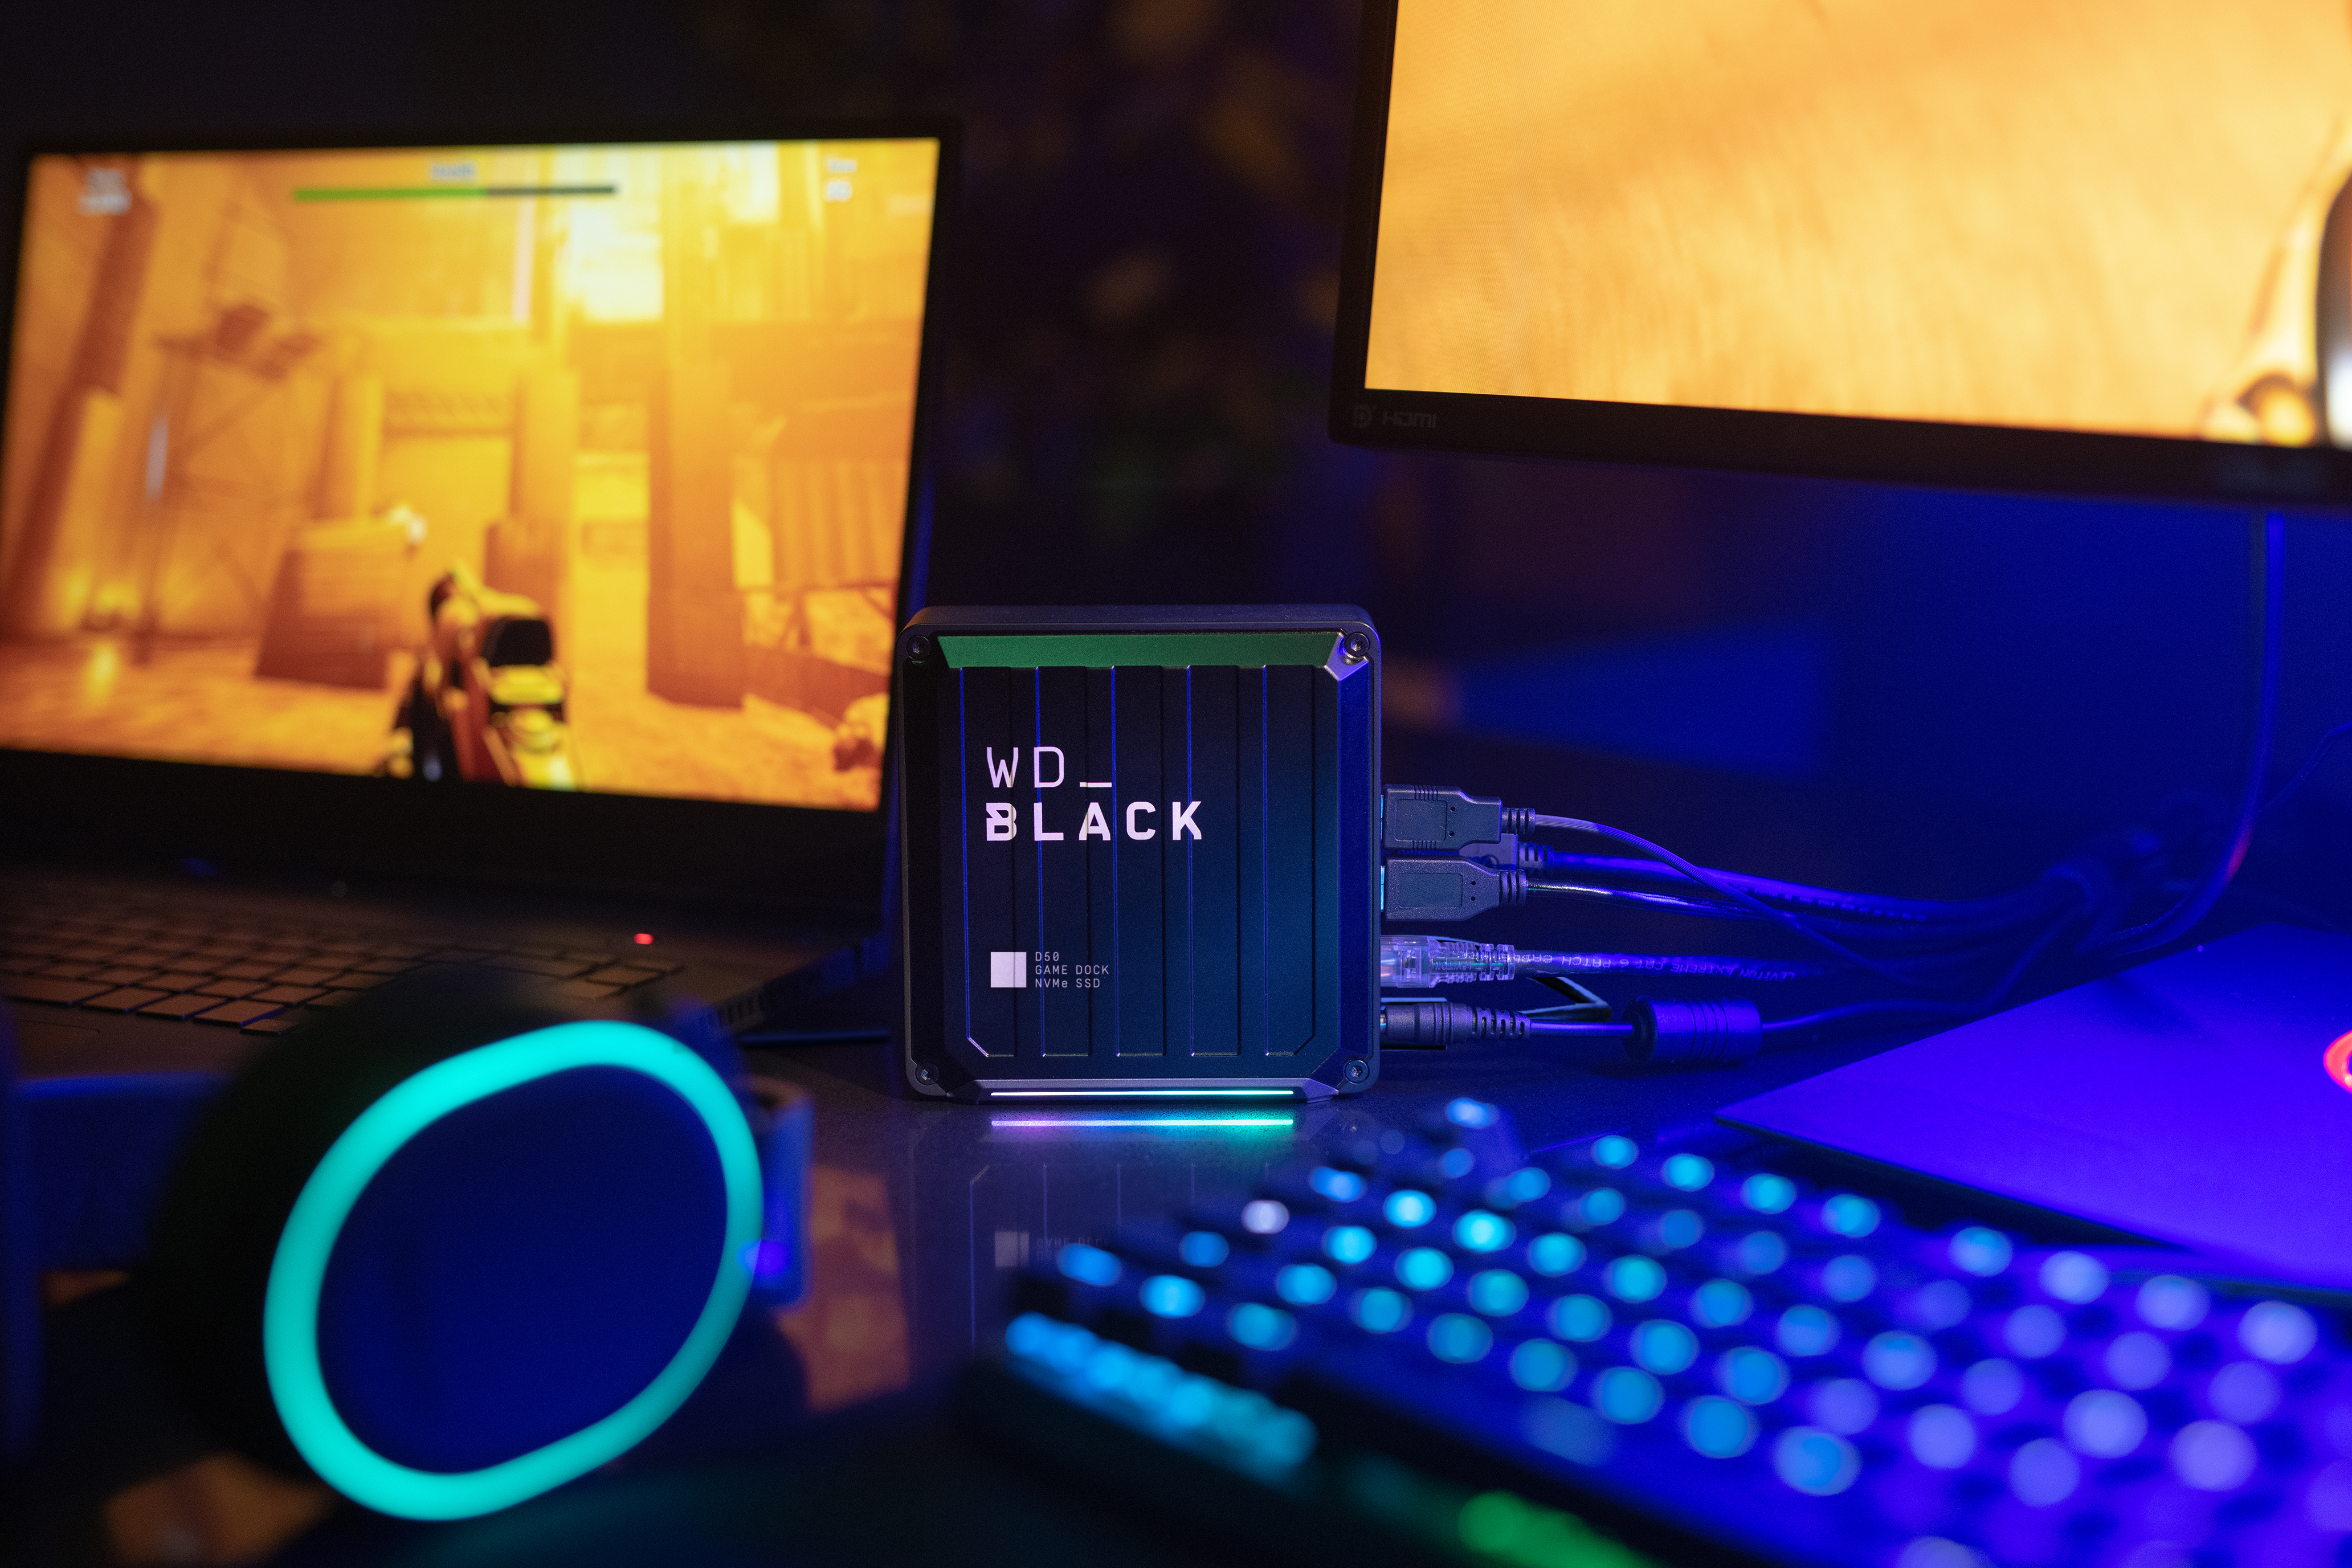 WD BLACK D50 Western Digital Launches Three Powerful Gaming Storage Solutions